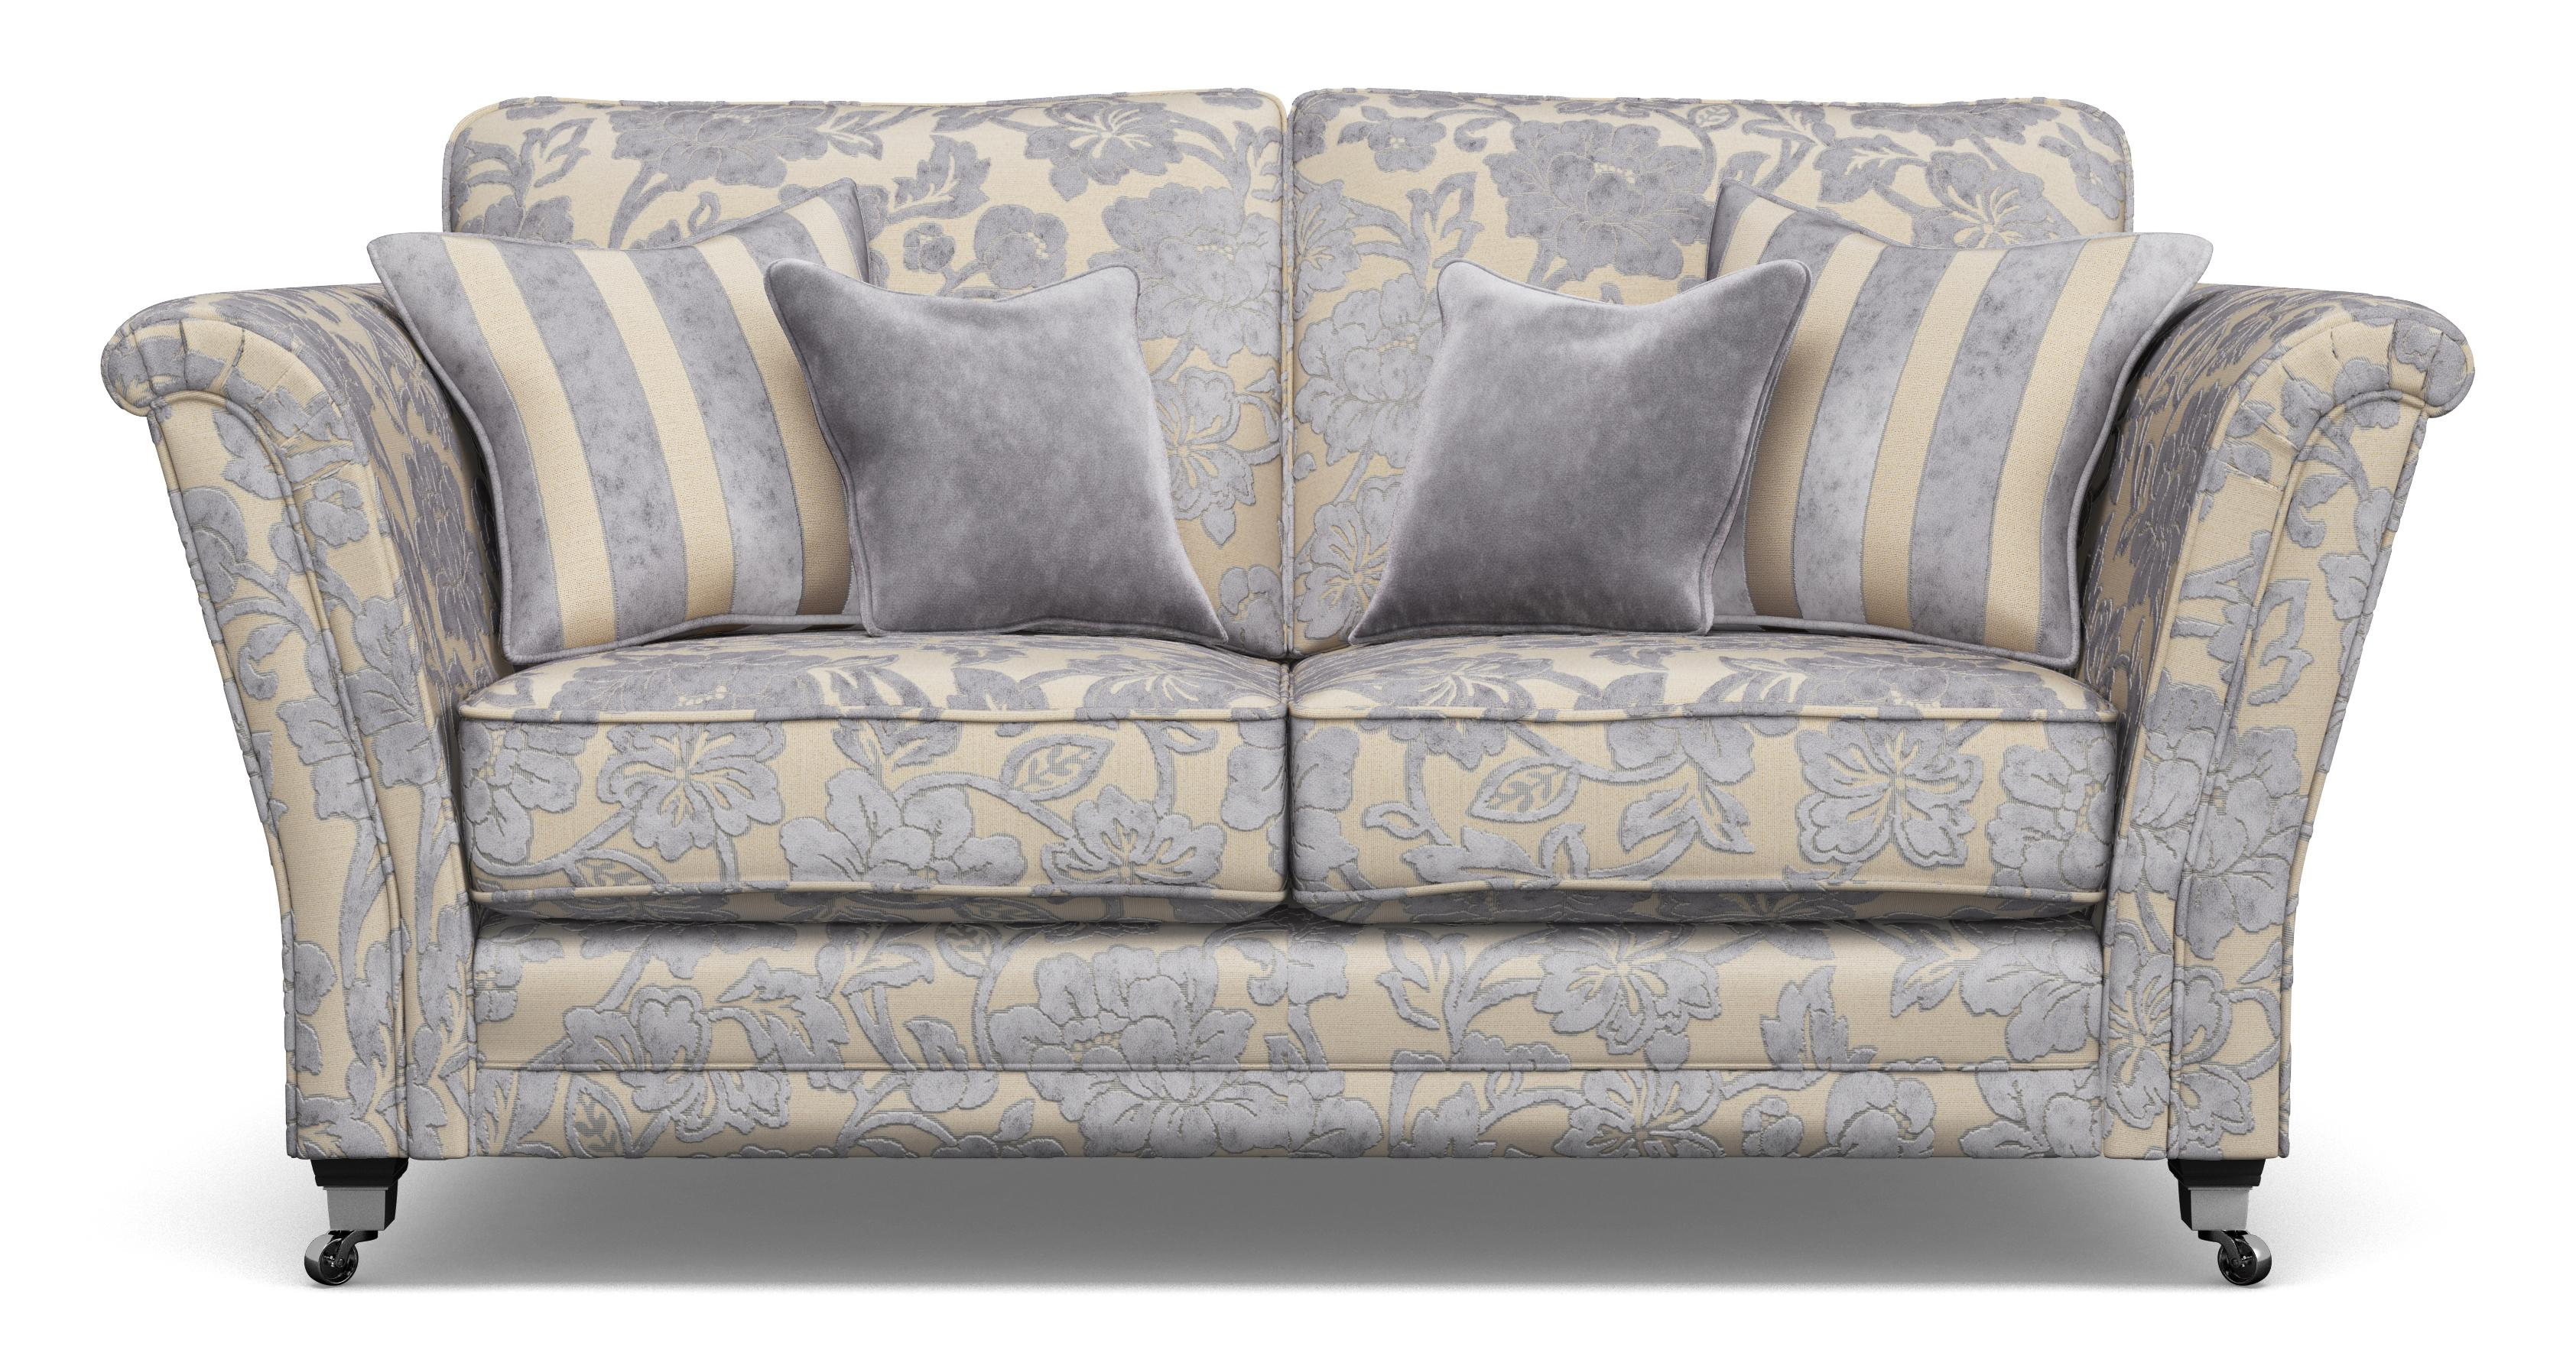 Hogarth Floral 2 Seater Sofa Hogarth Floral Dfs Ireland